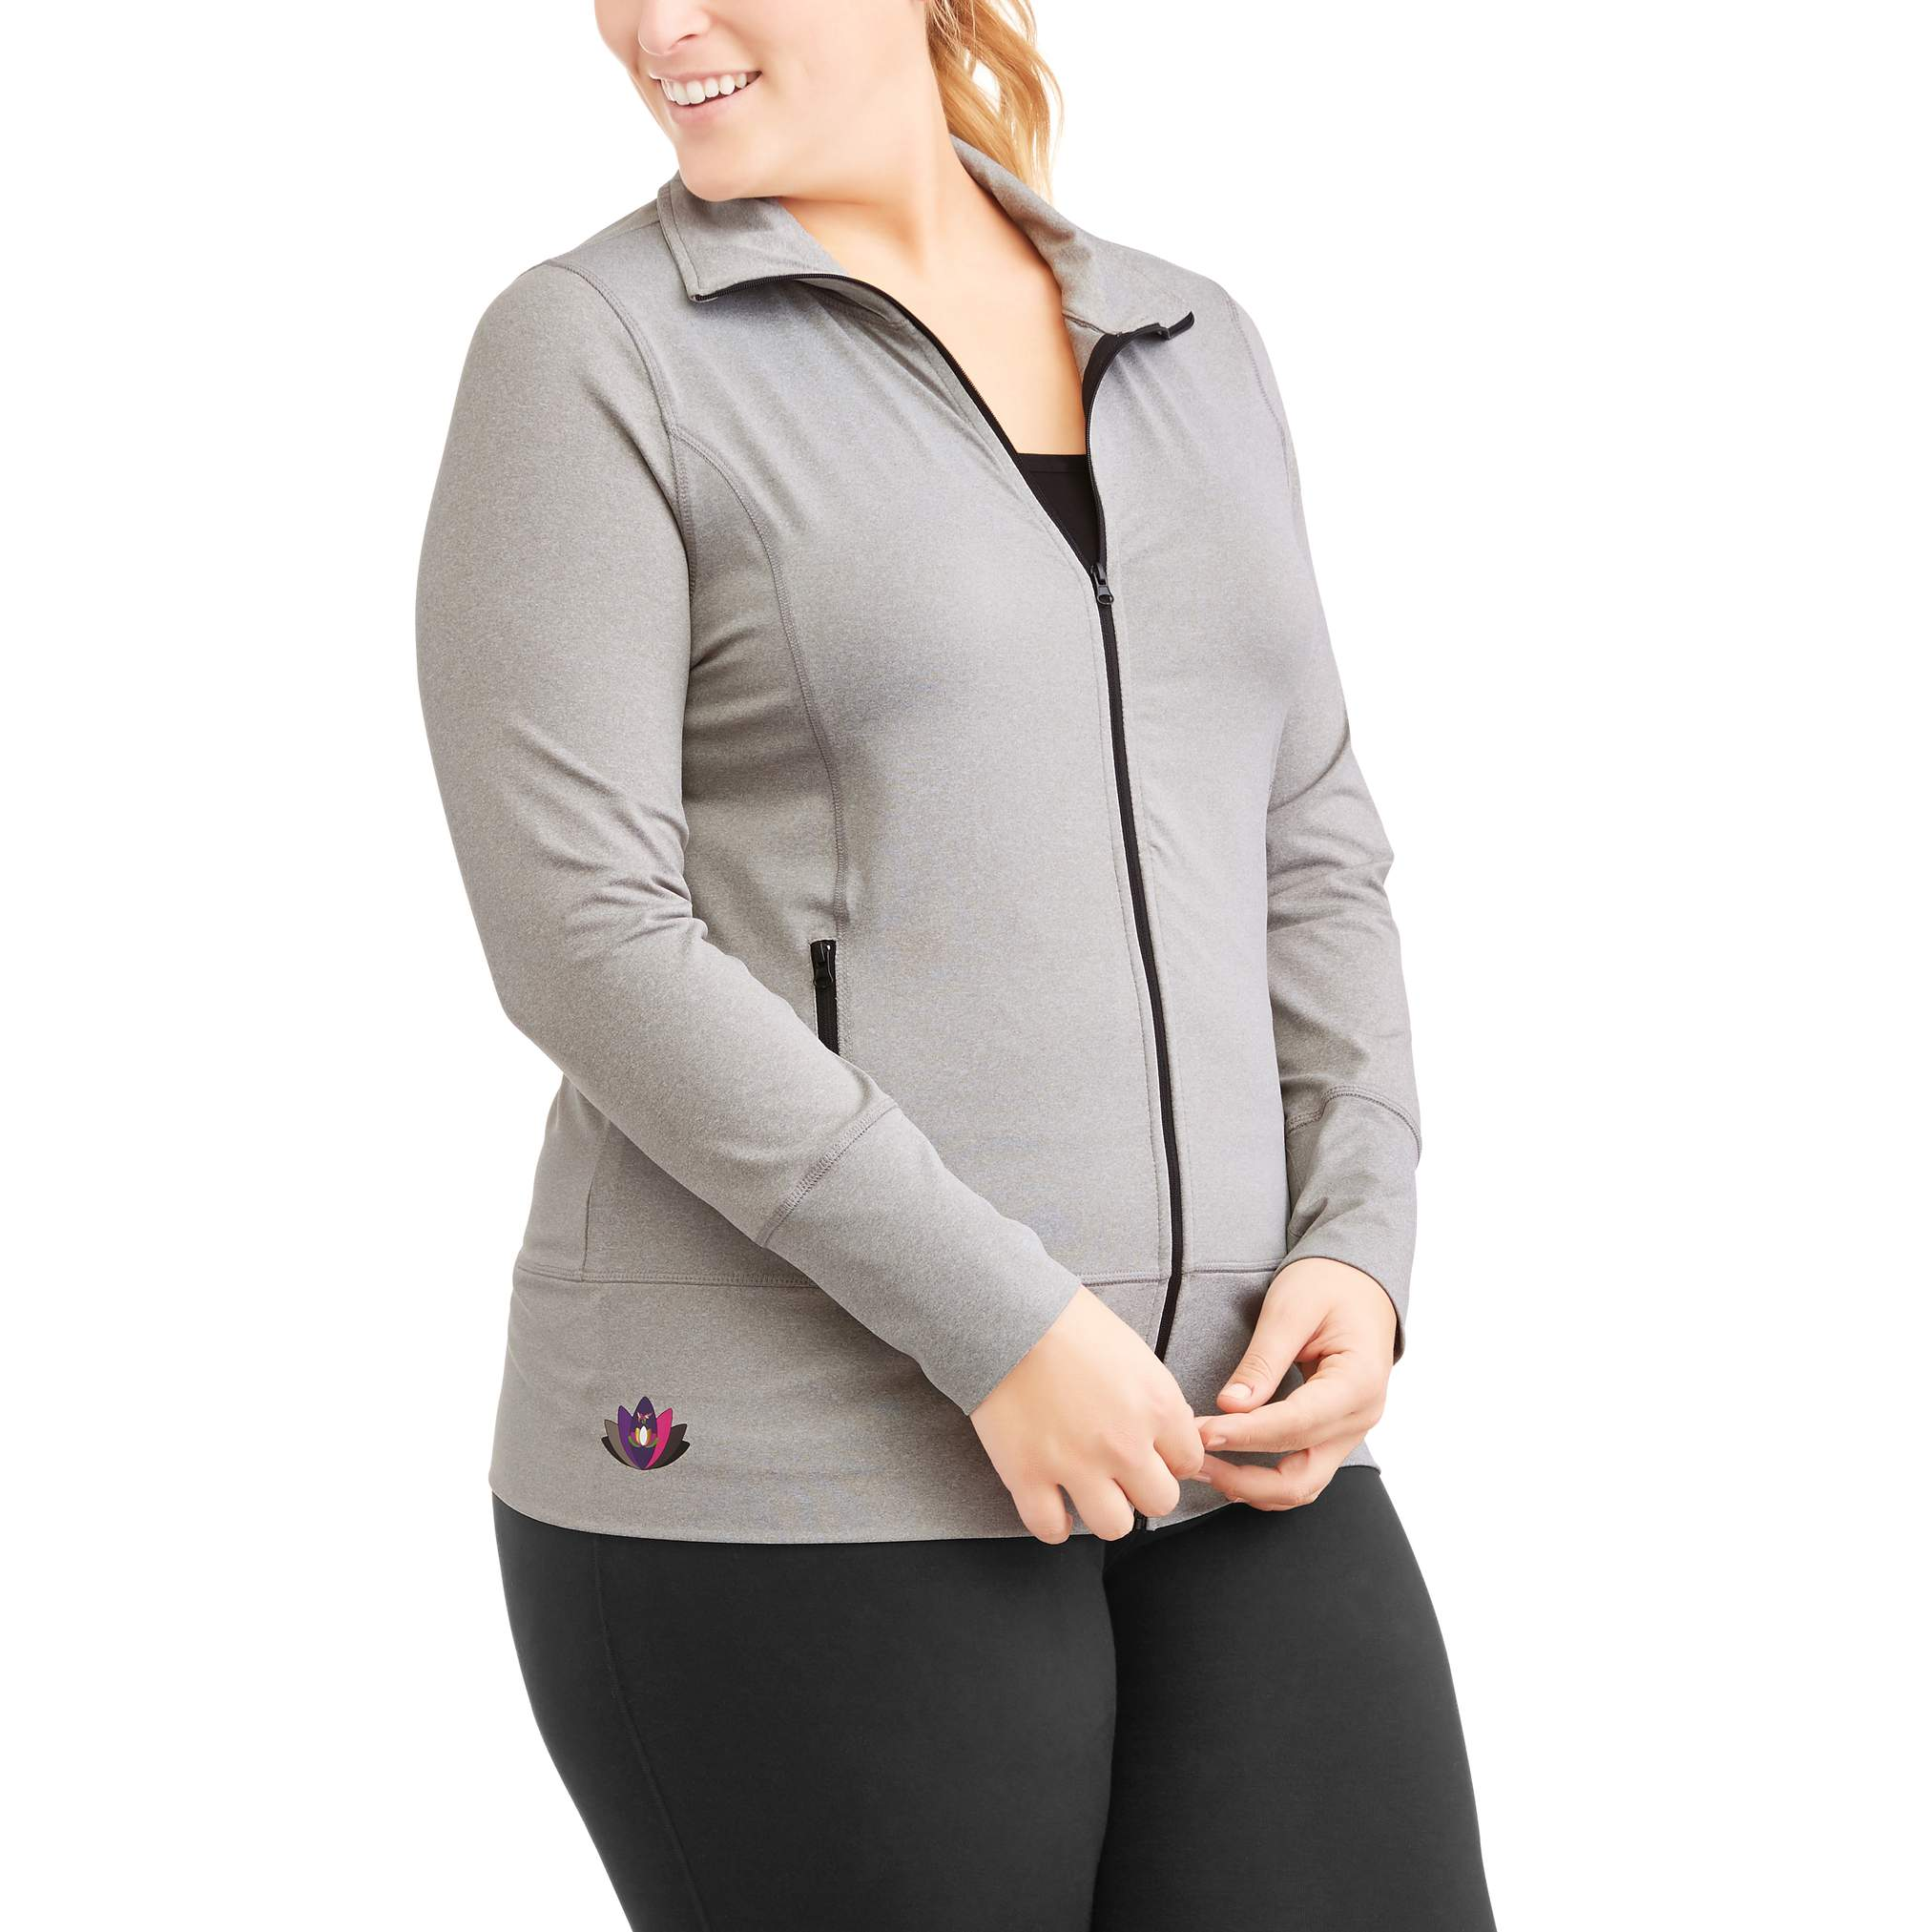 Be Empowered Naturally Women's Plus Jacket